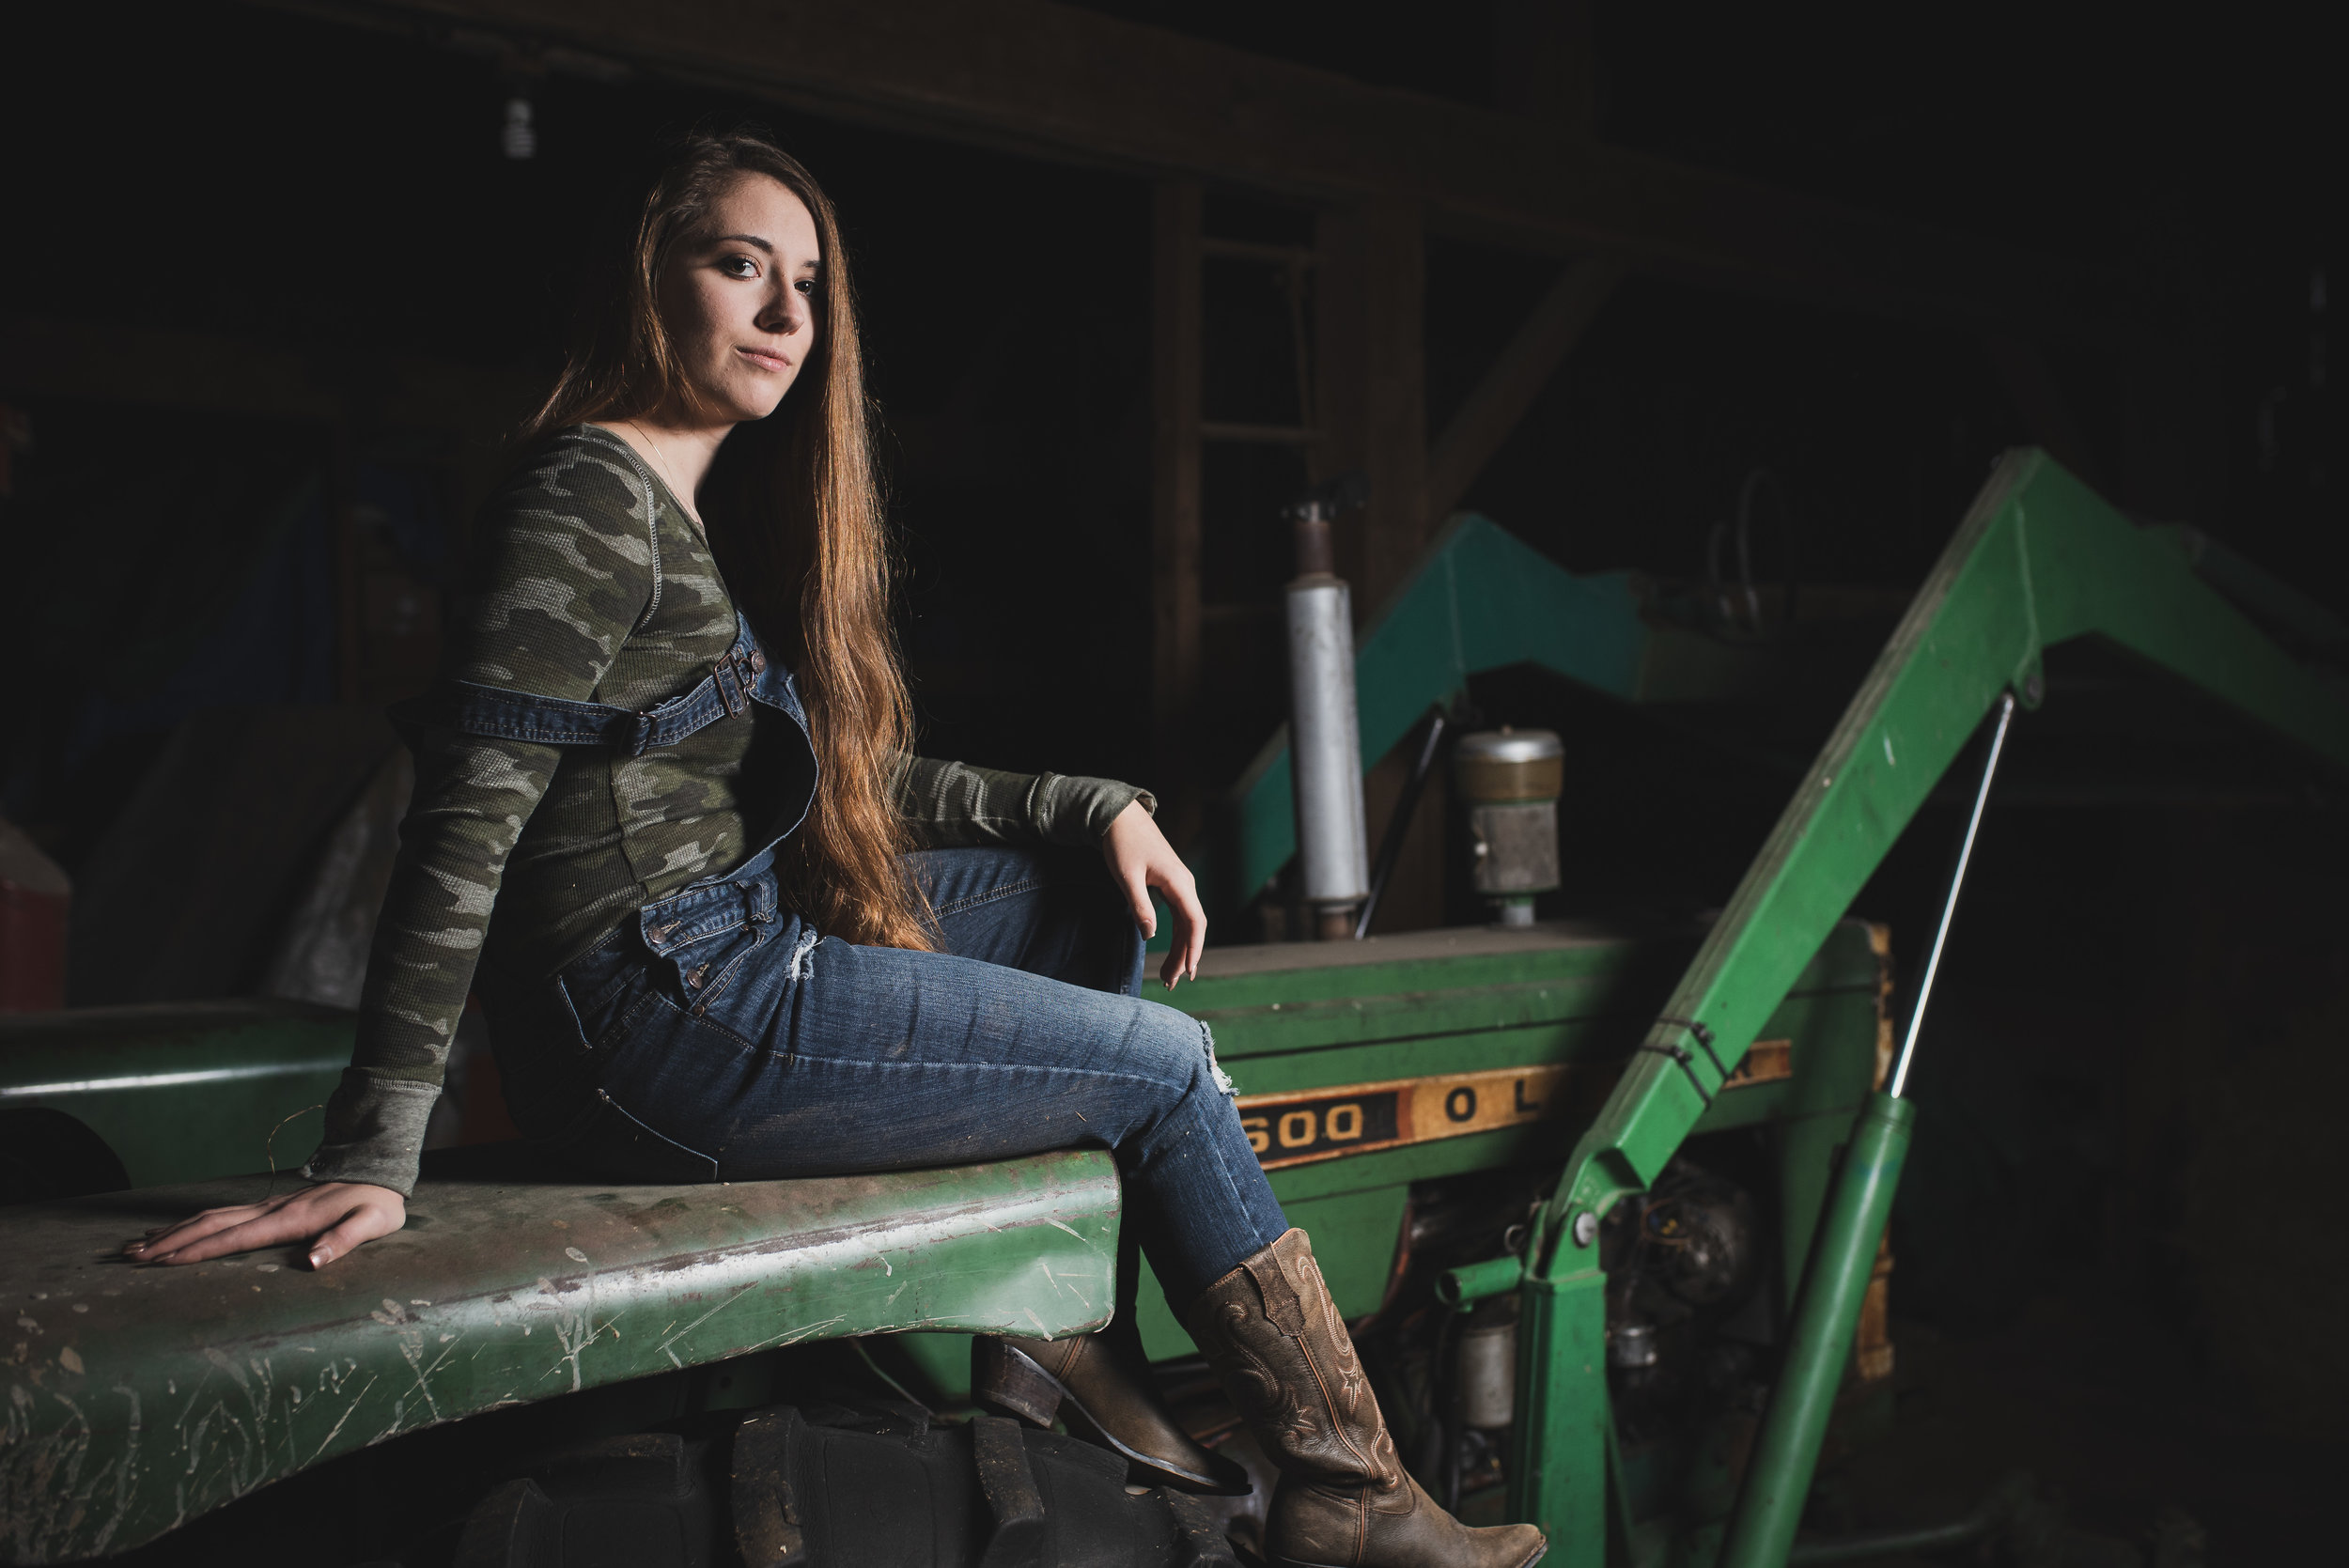 Fashion long hair tractor portrait